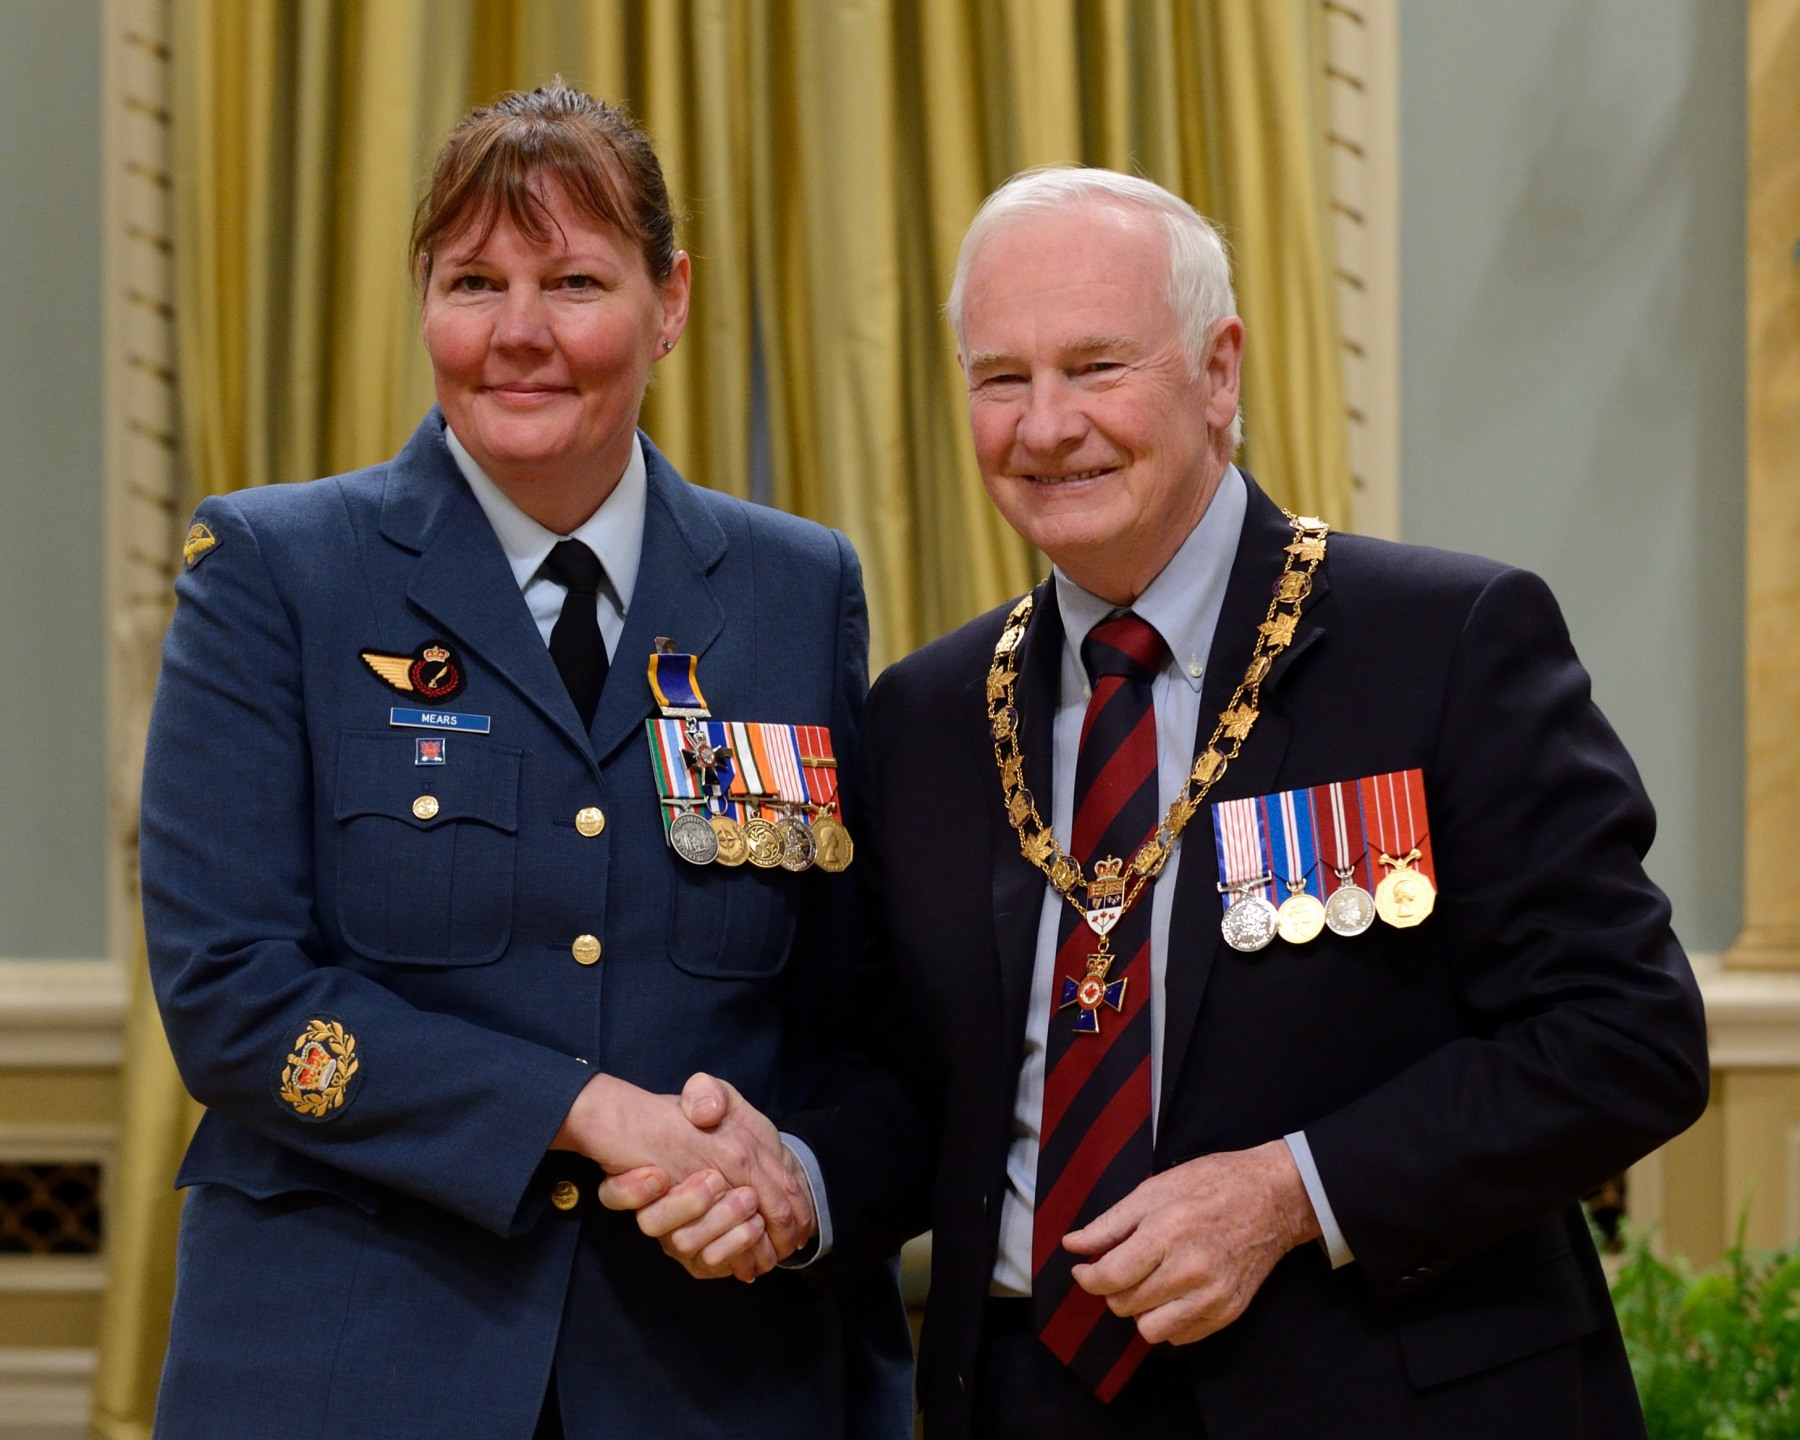 His Excellency presented the Order of Military Merit at the Member level (M.M.M.) to Master Warrant Officer Patricia-Joanne Mears, M.M.M., C.D., 19 Wing (Lazo, B.C.).